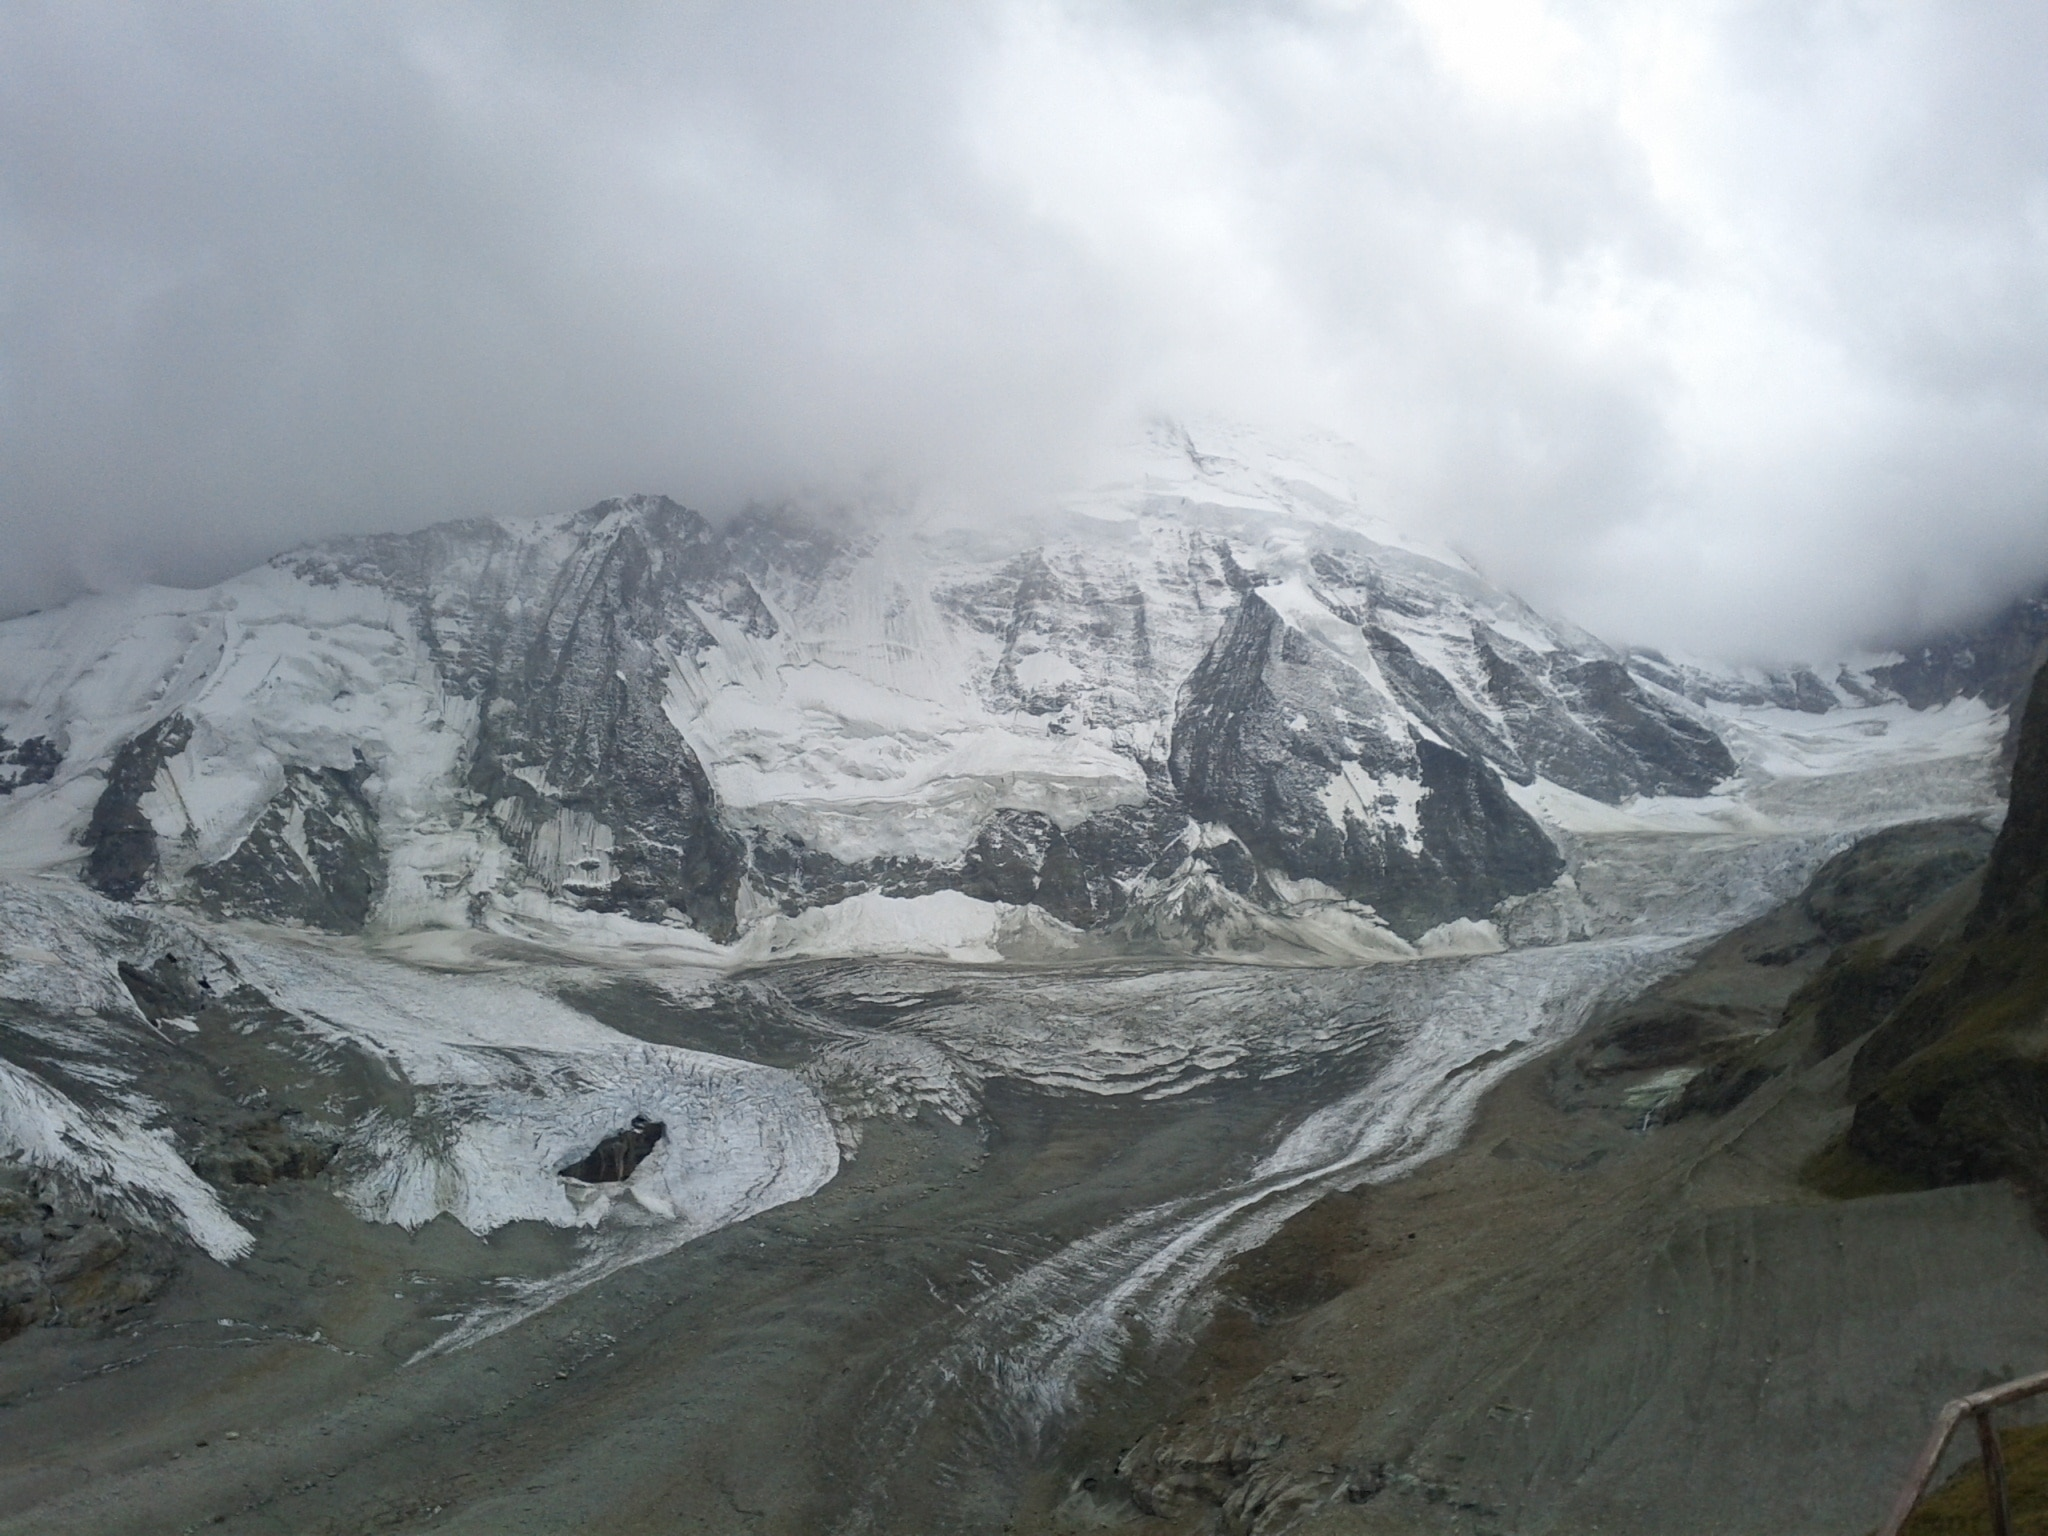 One of the many weather moods on the Matterhorn while I was writing on the deck at the Schönbiel​hütte.